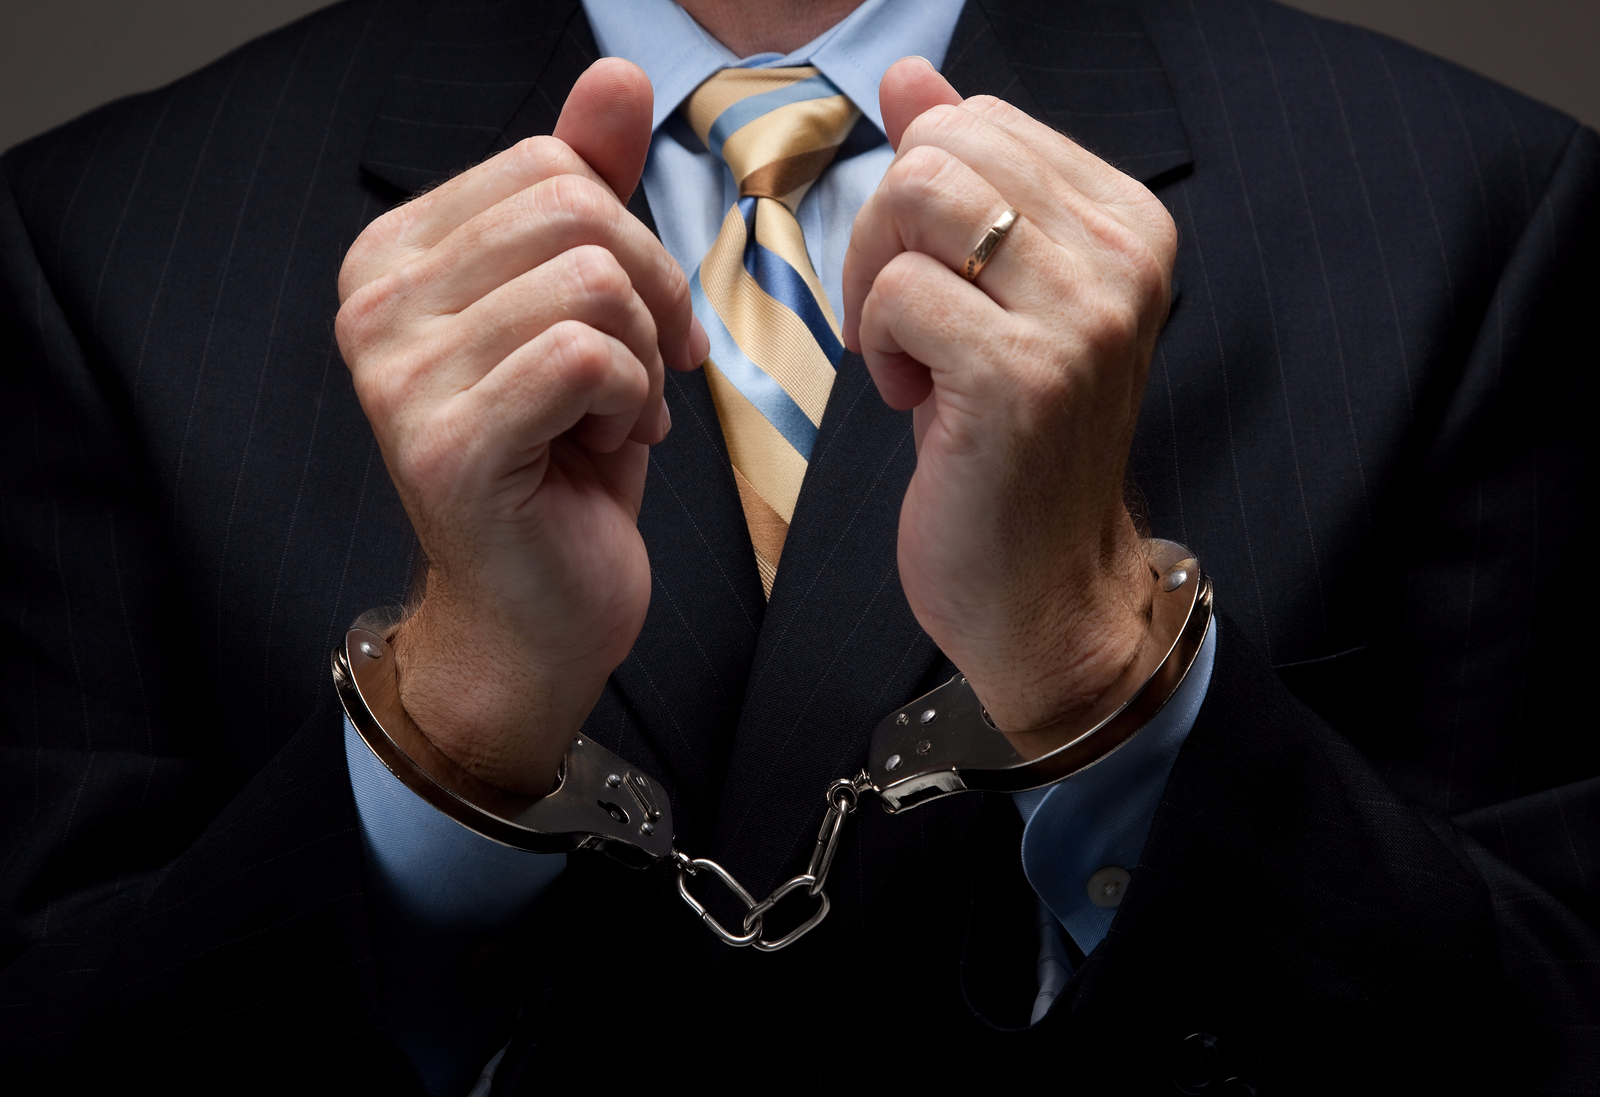 Buffalo, NY White Collar Crime lawyer